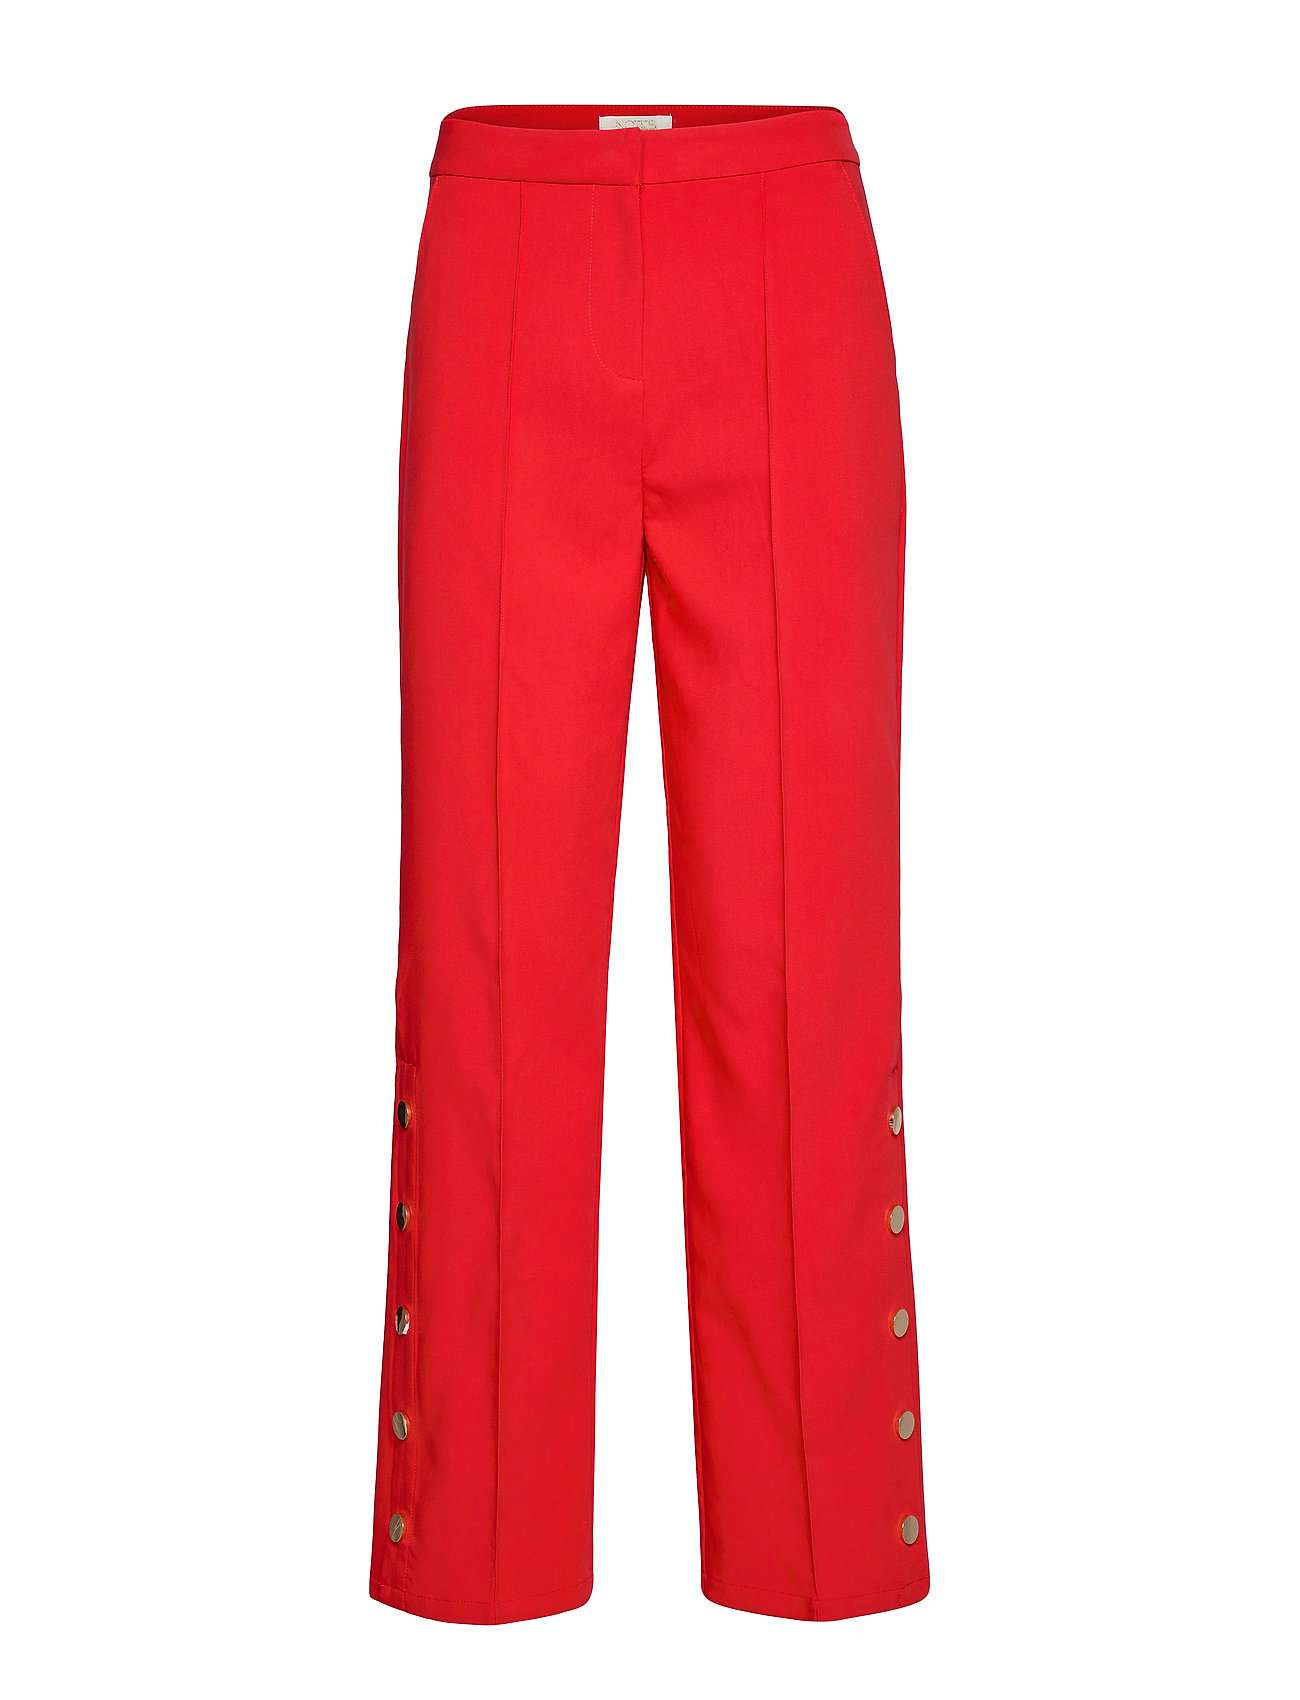 Notes du Nord Maddy Pants - SCARLET RED